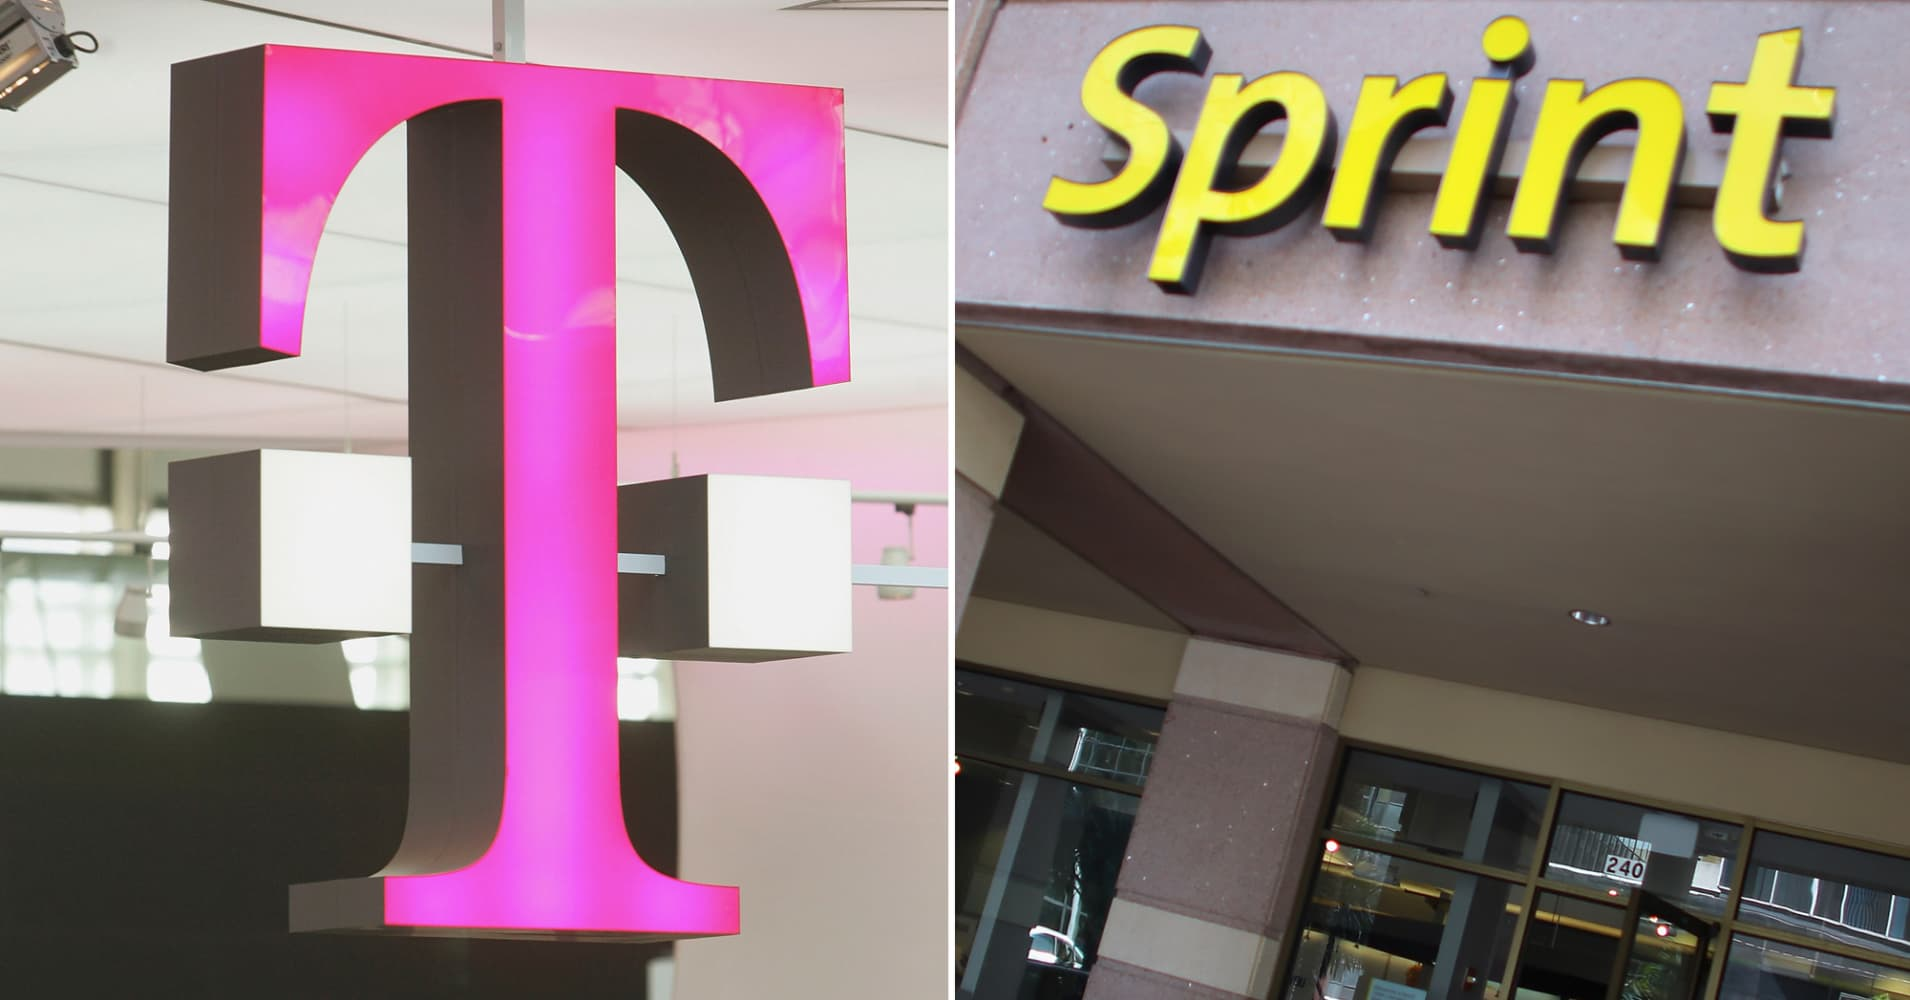 Red-hot telecom deal market about to get even hotter with reported Sprint, T-Mobile tie-up talks